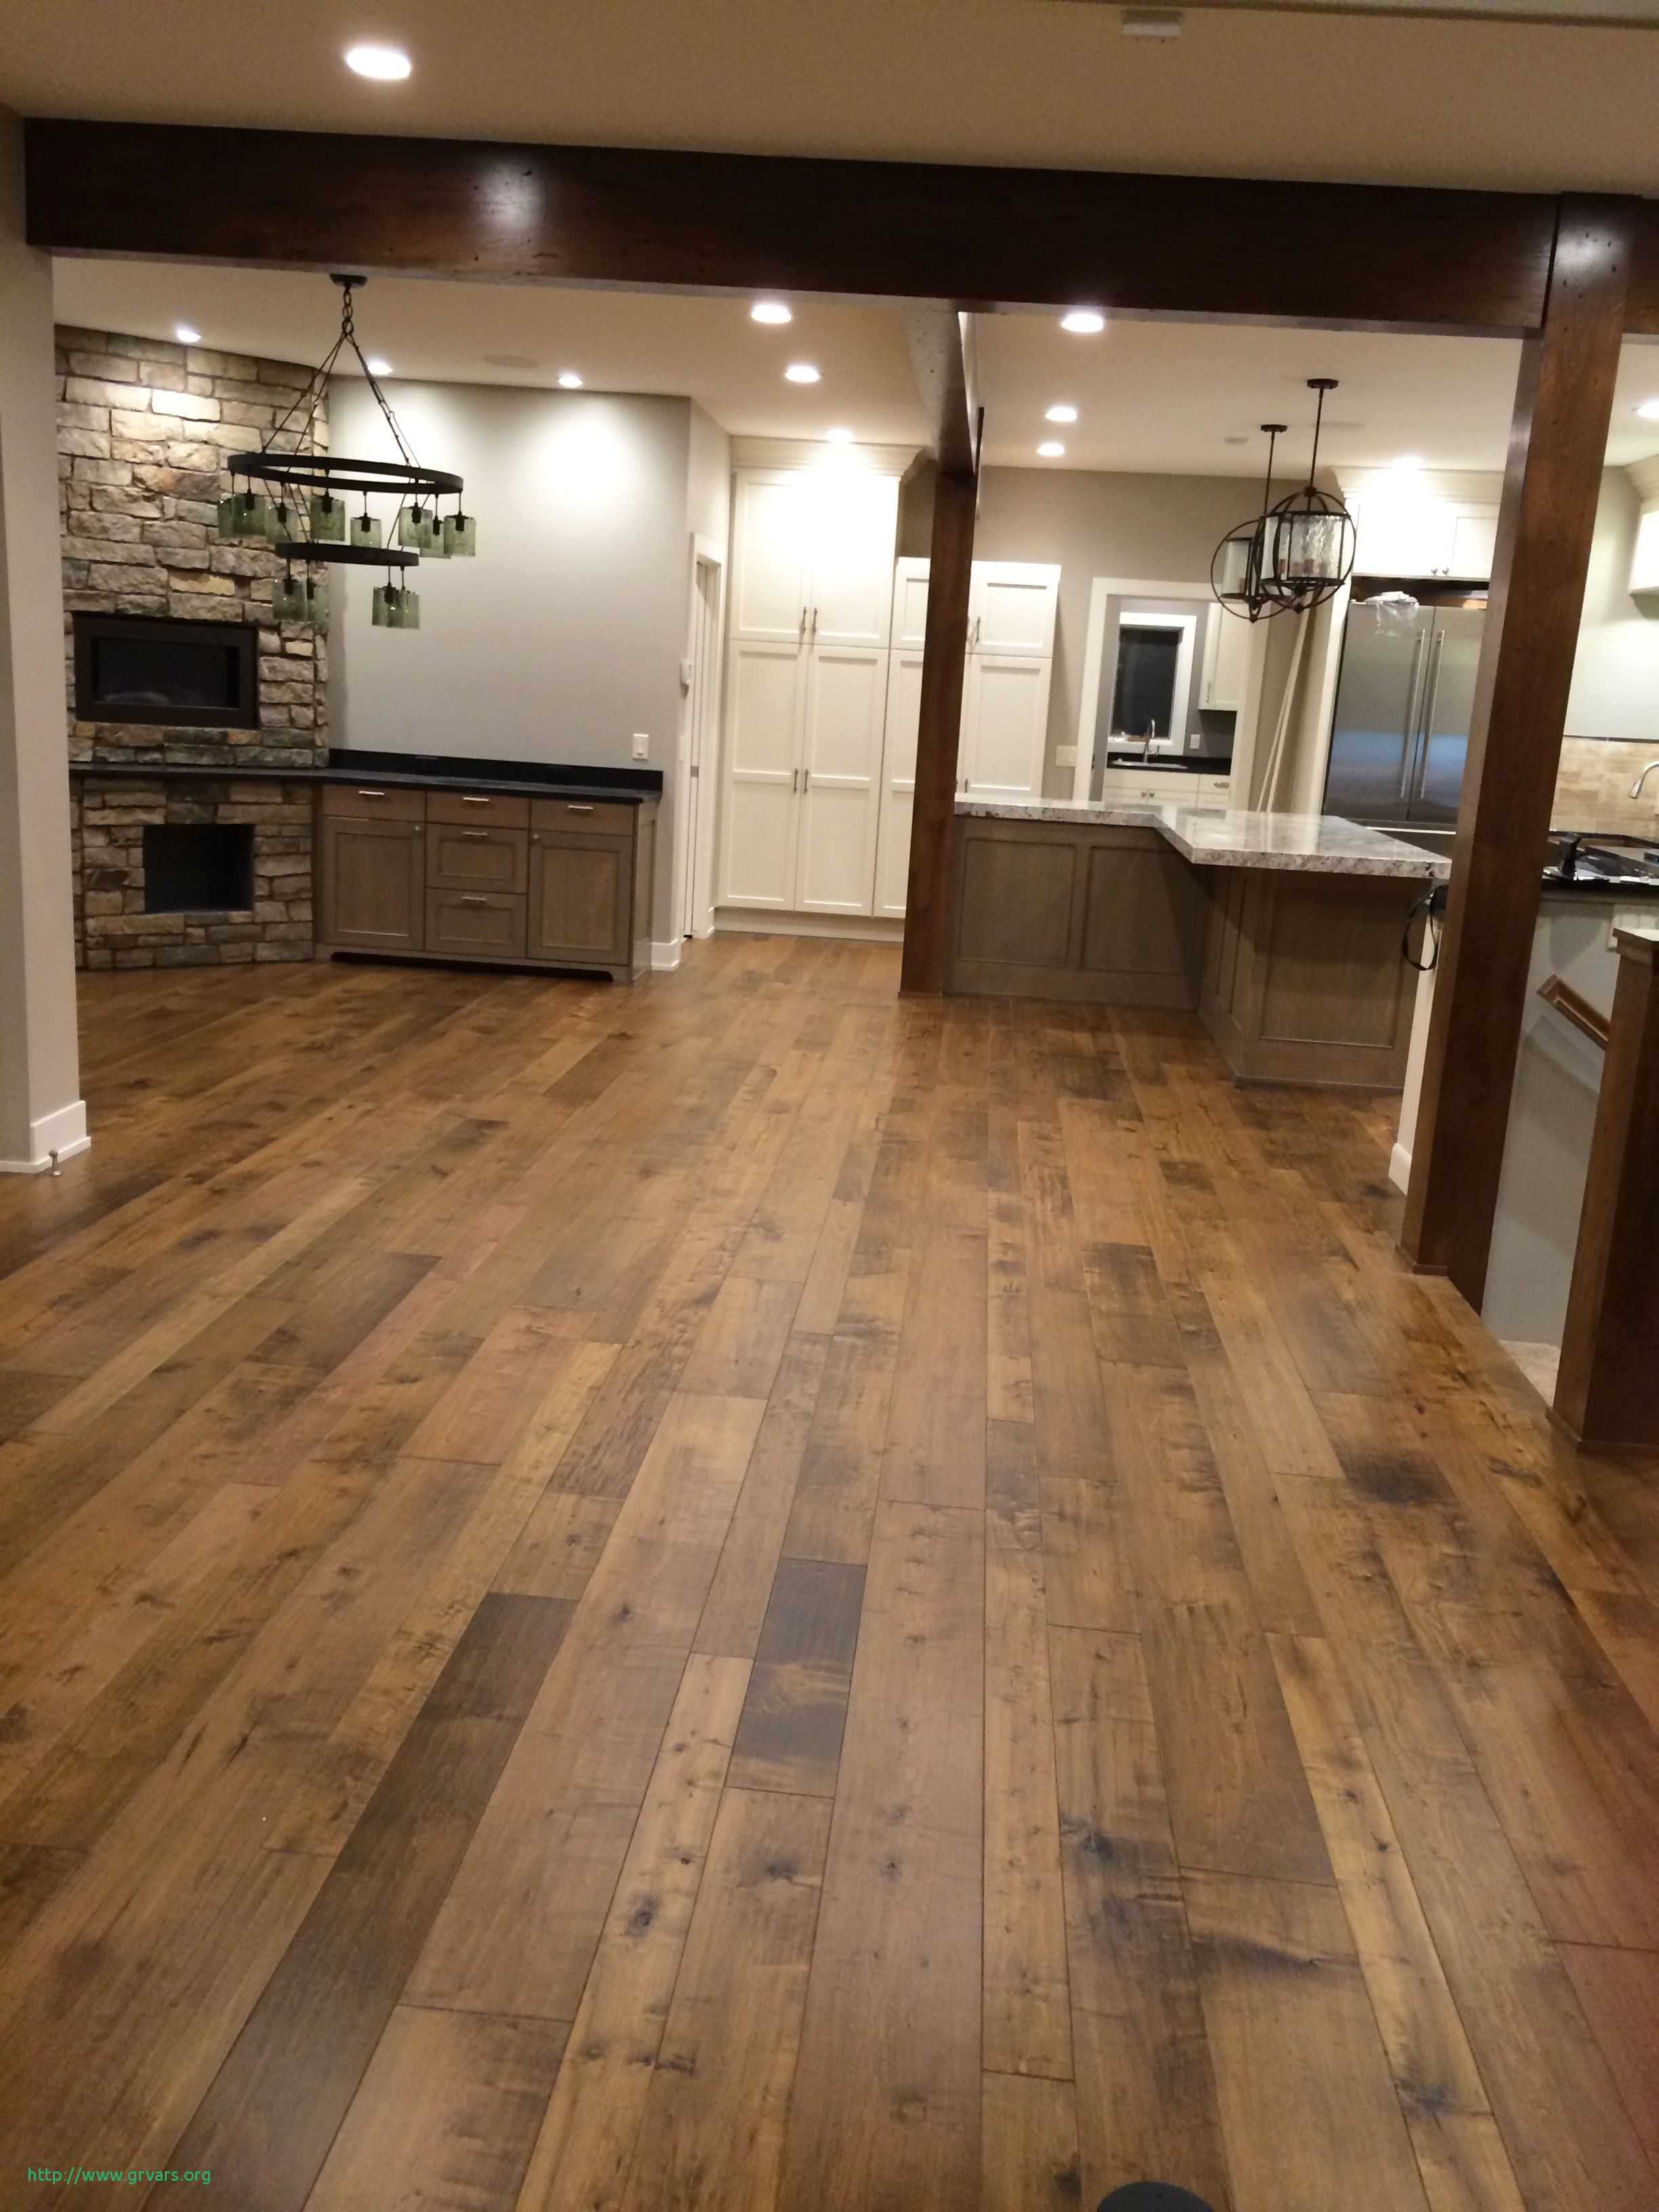 hardwood flooring ri of 17 meilleur de how to install carpet on hardwood floor ideas blog for how to install carpet on hardwood floor beau monterey hardwood collection rooms and spaces